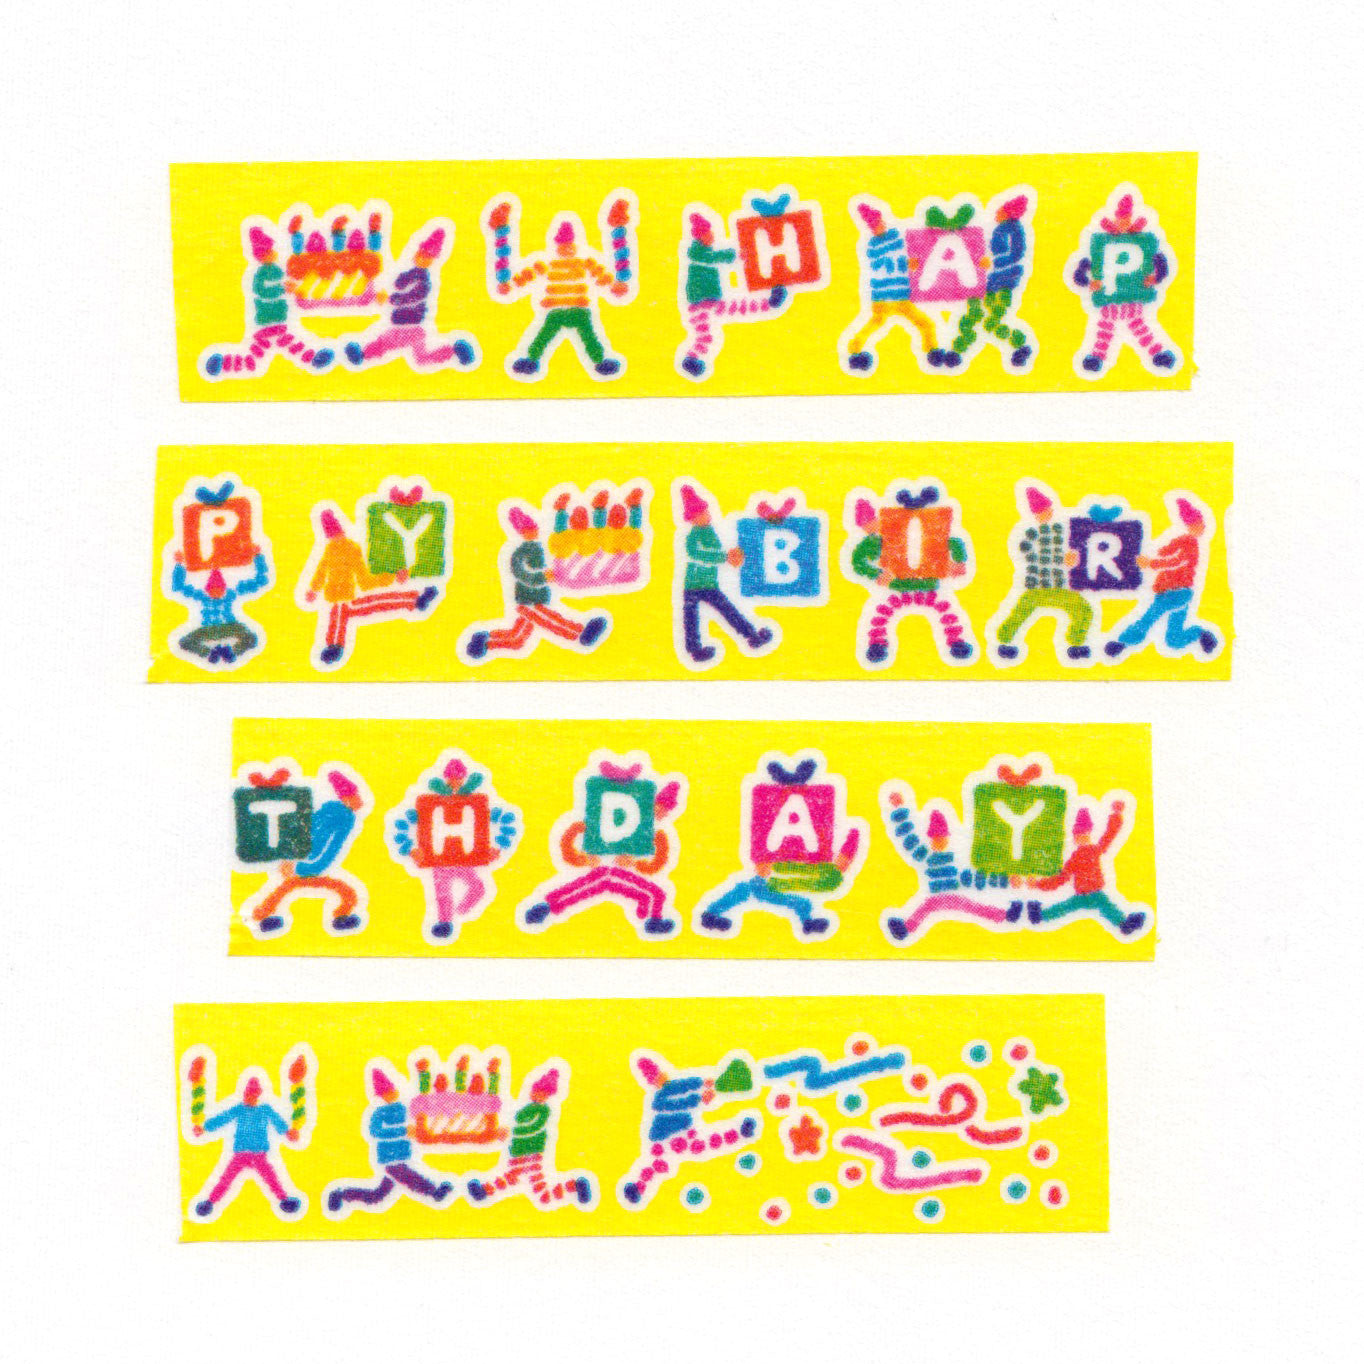 AIUEO Happy Birthday 01 Washi Tape